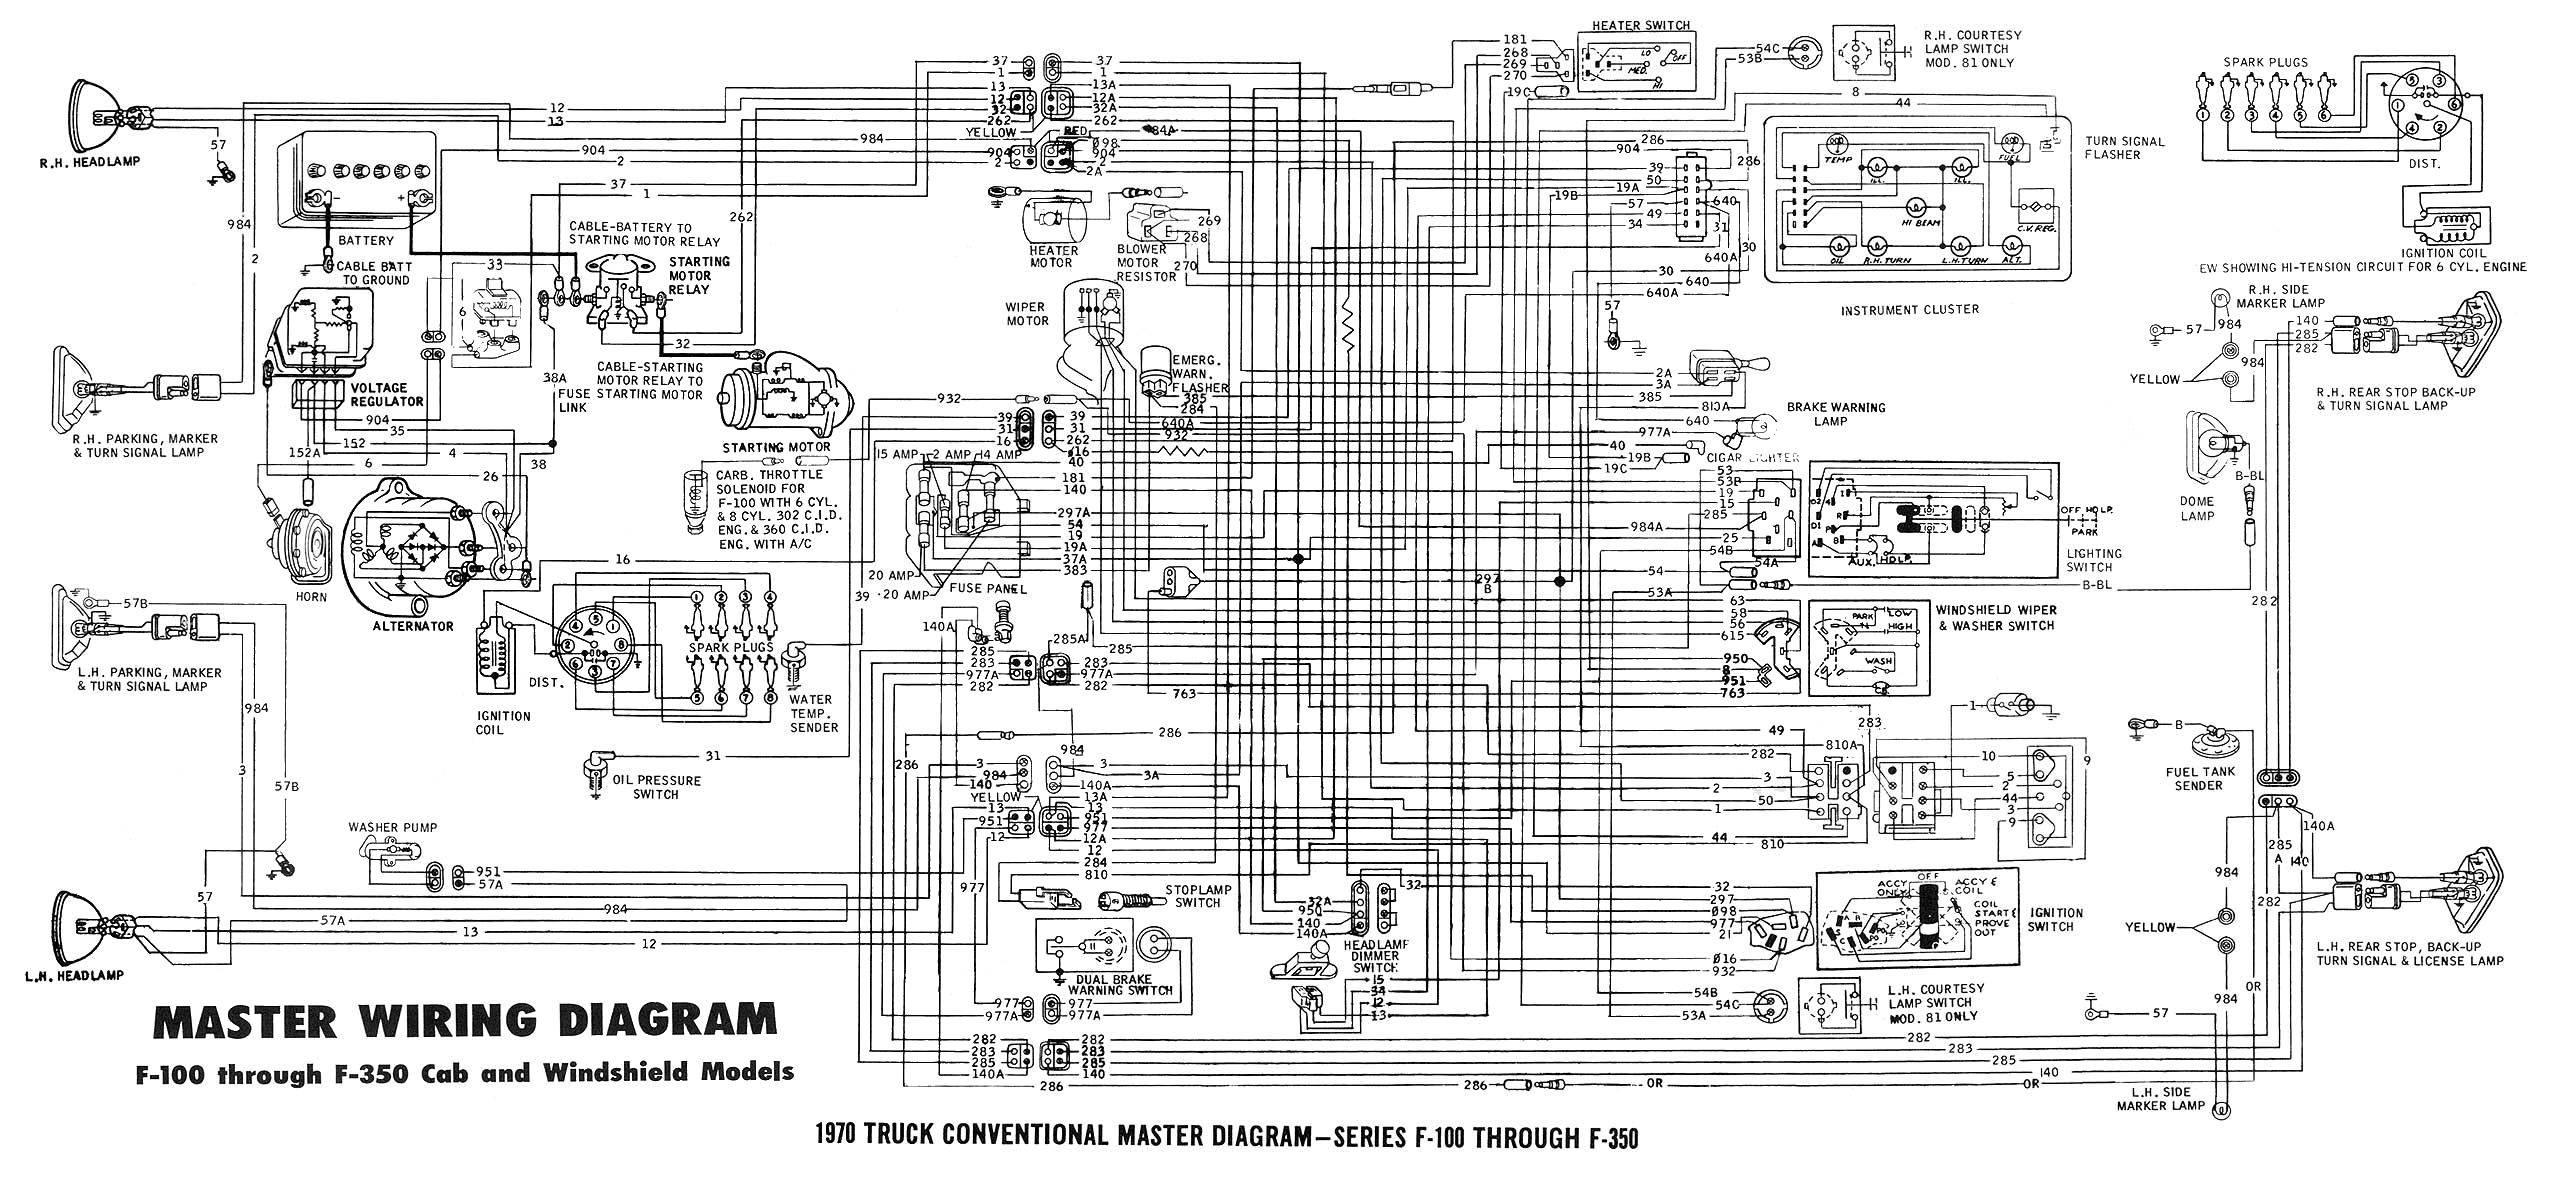 tata indica electrical wiring diagram pdf tata gmc electrical wiring diagram gmc wiring diagrams online on tata indica electrical wiring diagram pdf